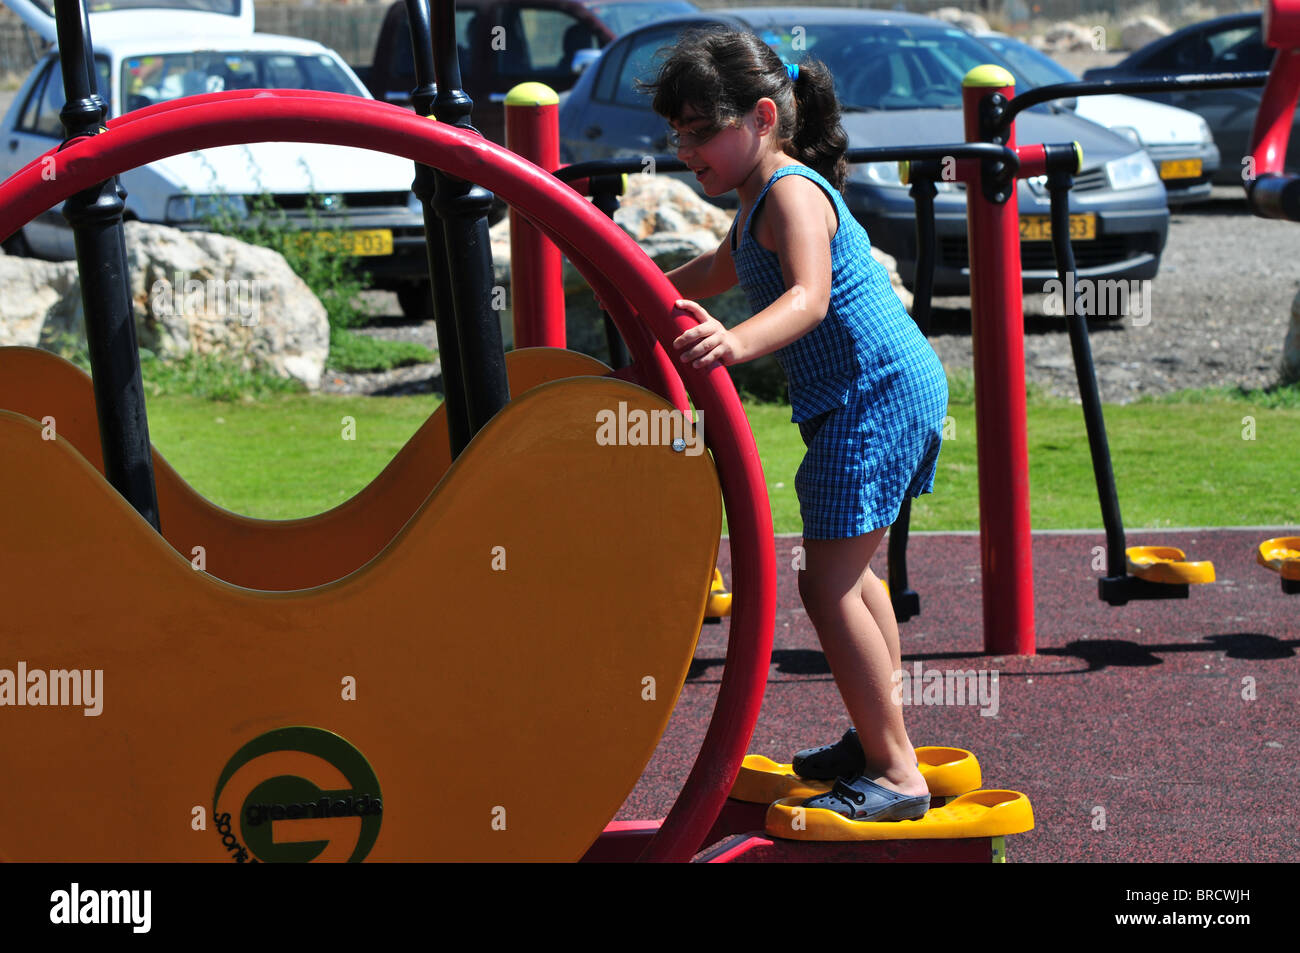 Israel, Haifa, Girl of 6 plays in a public fitness playground - model release available Stock Photo